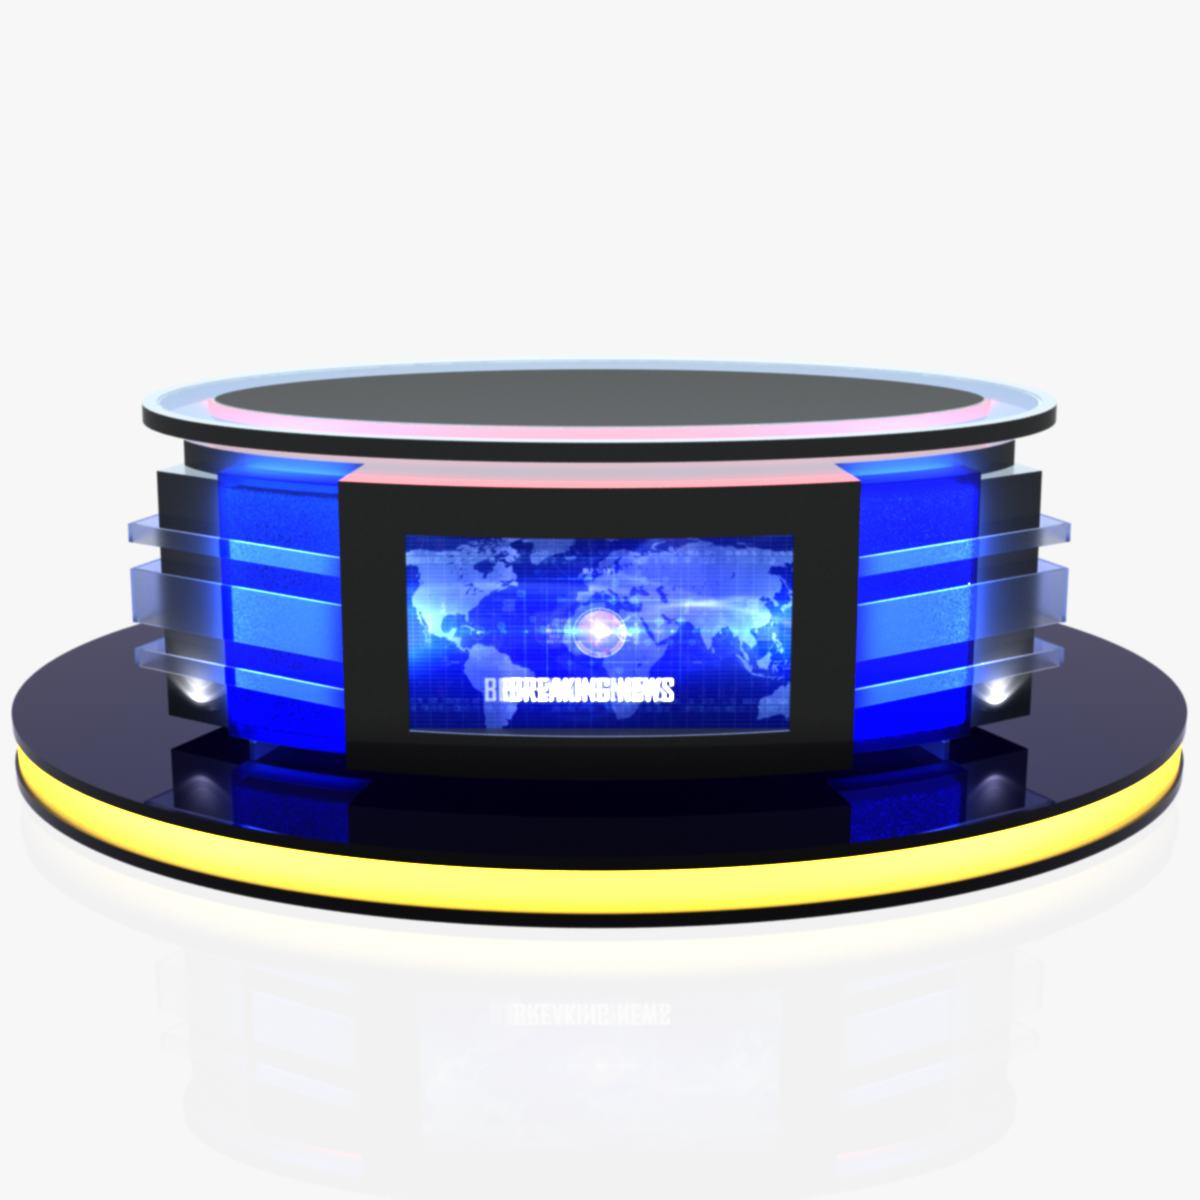 virtual tv studio news desk 12 3d model 3ds max dxf fbx dae  obj 223551